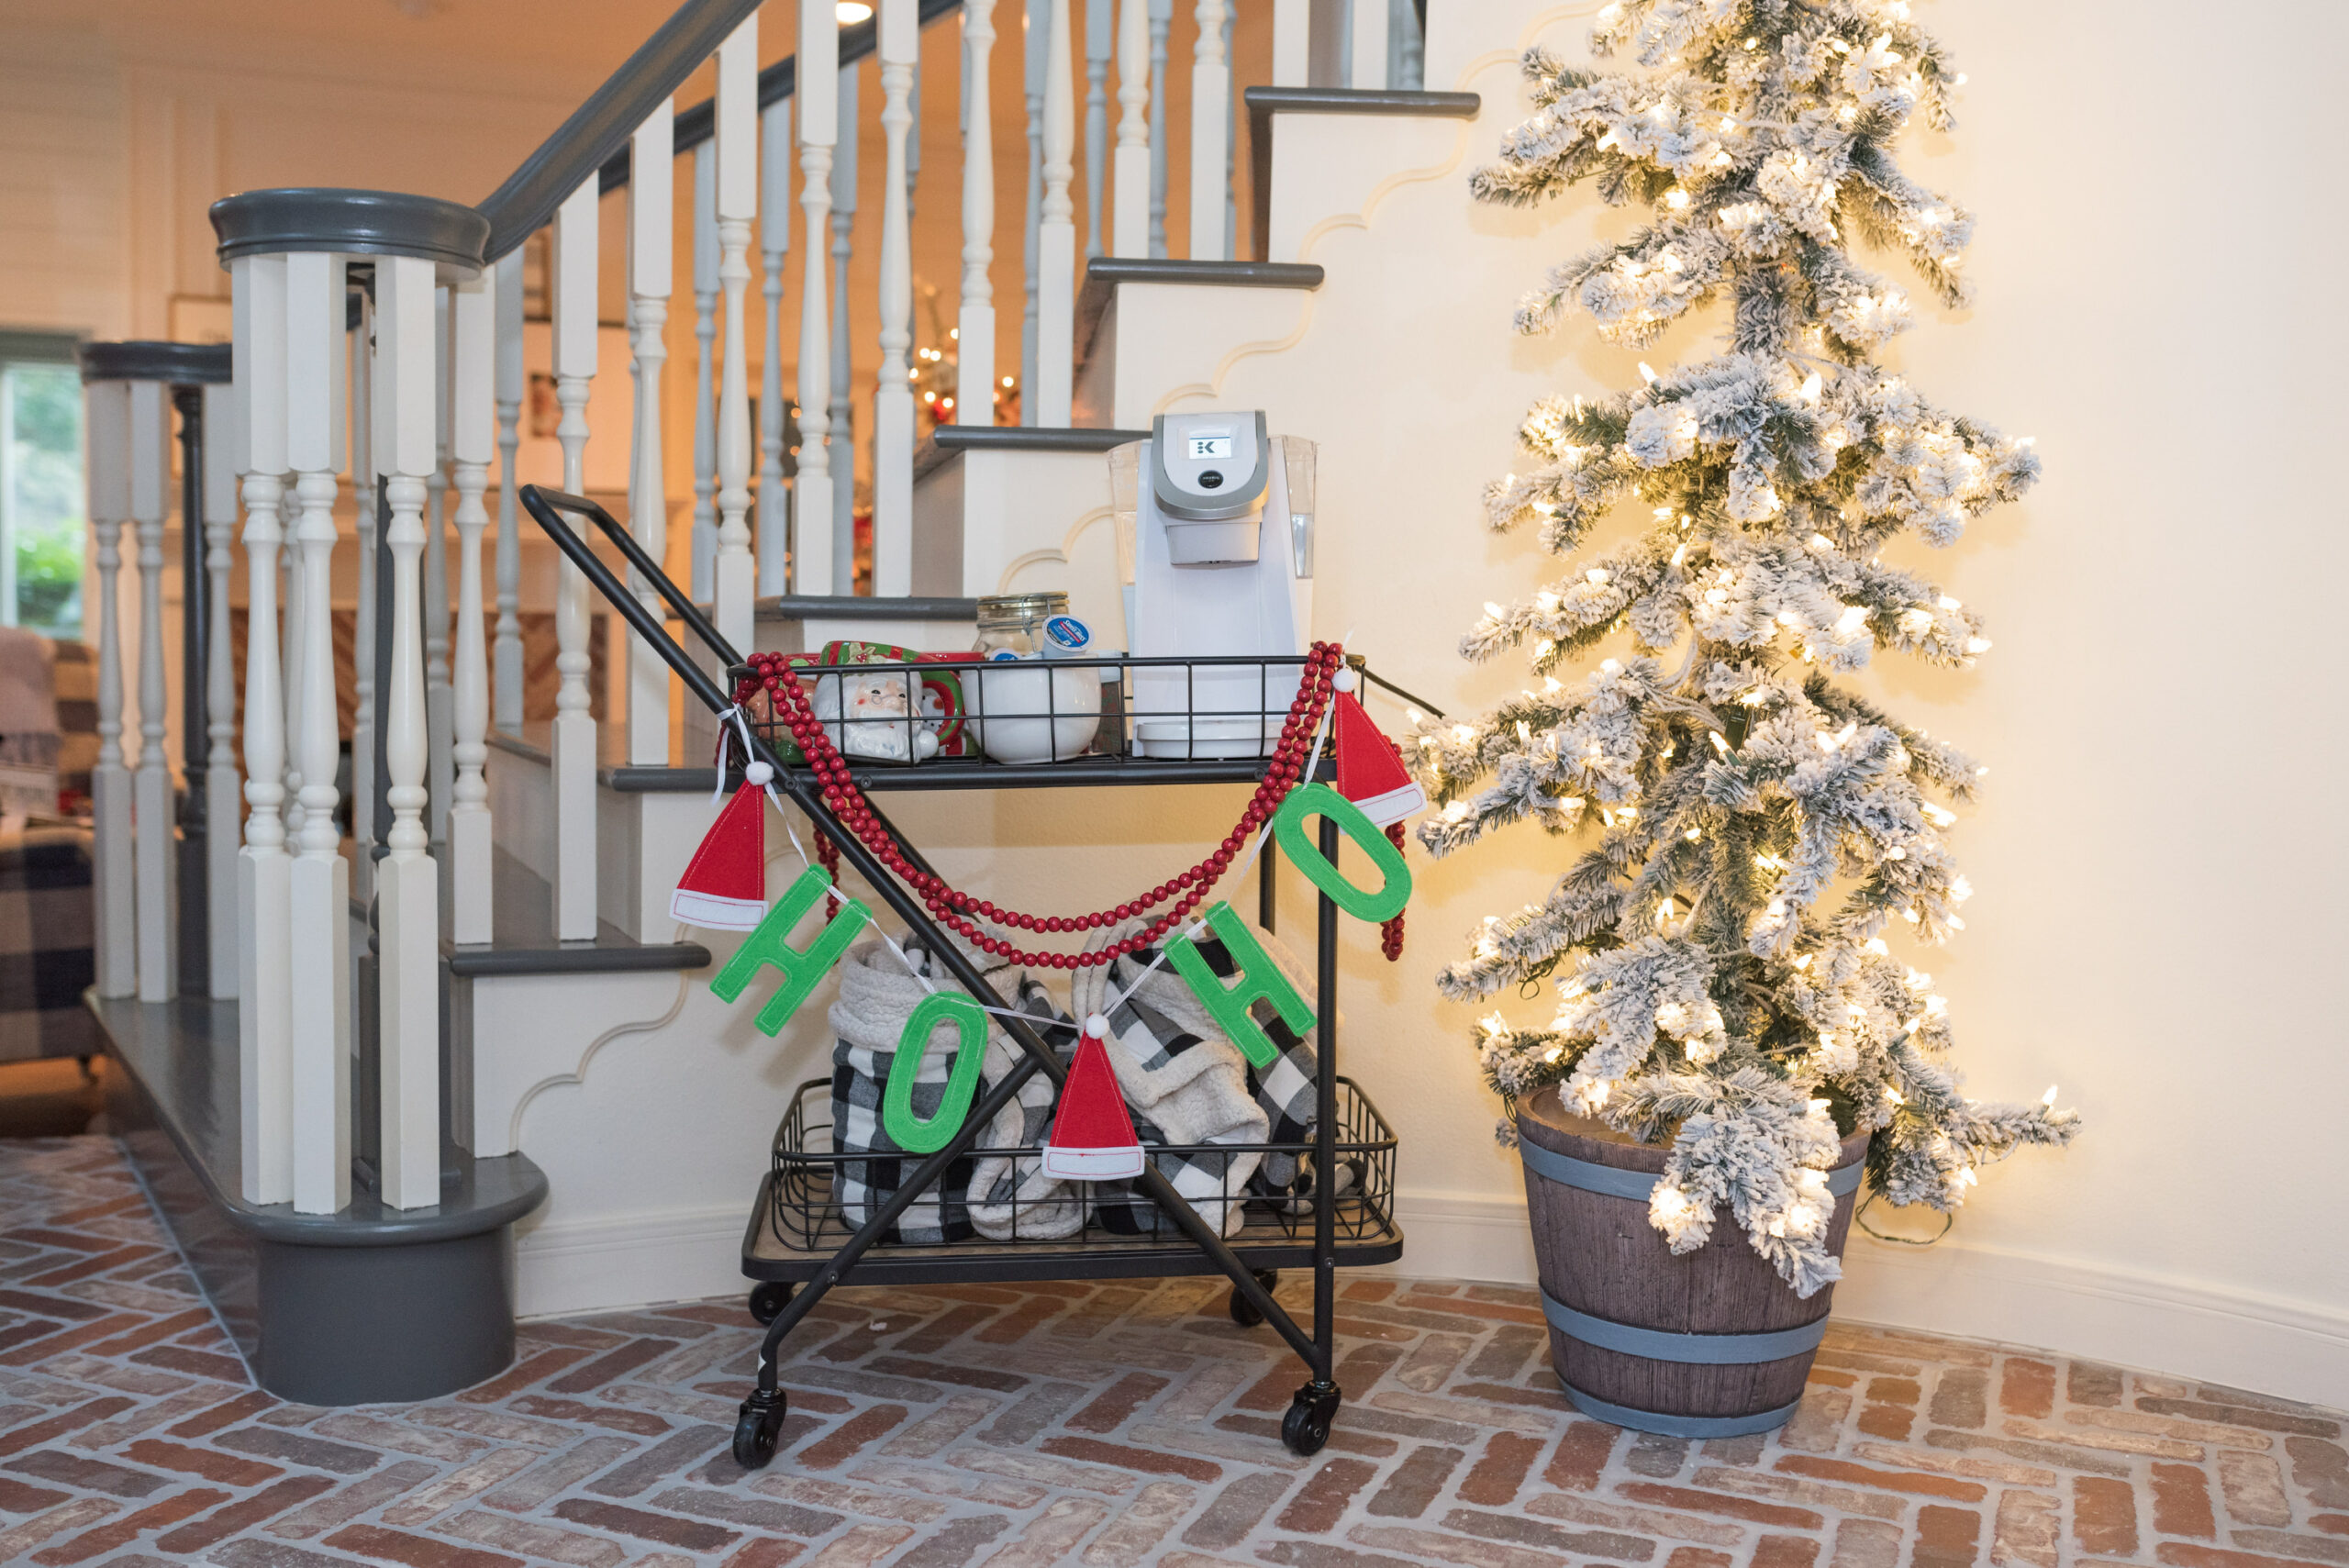 Hot Cocoa Bar by popular Houston lifestyle blog, Fancy Ashley: image of a black metal bar cart containing a Keurig, Christmas mugs, Christmas garland, mini marshmallows, and coco pods.